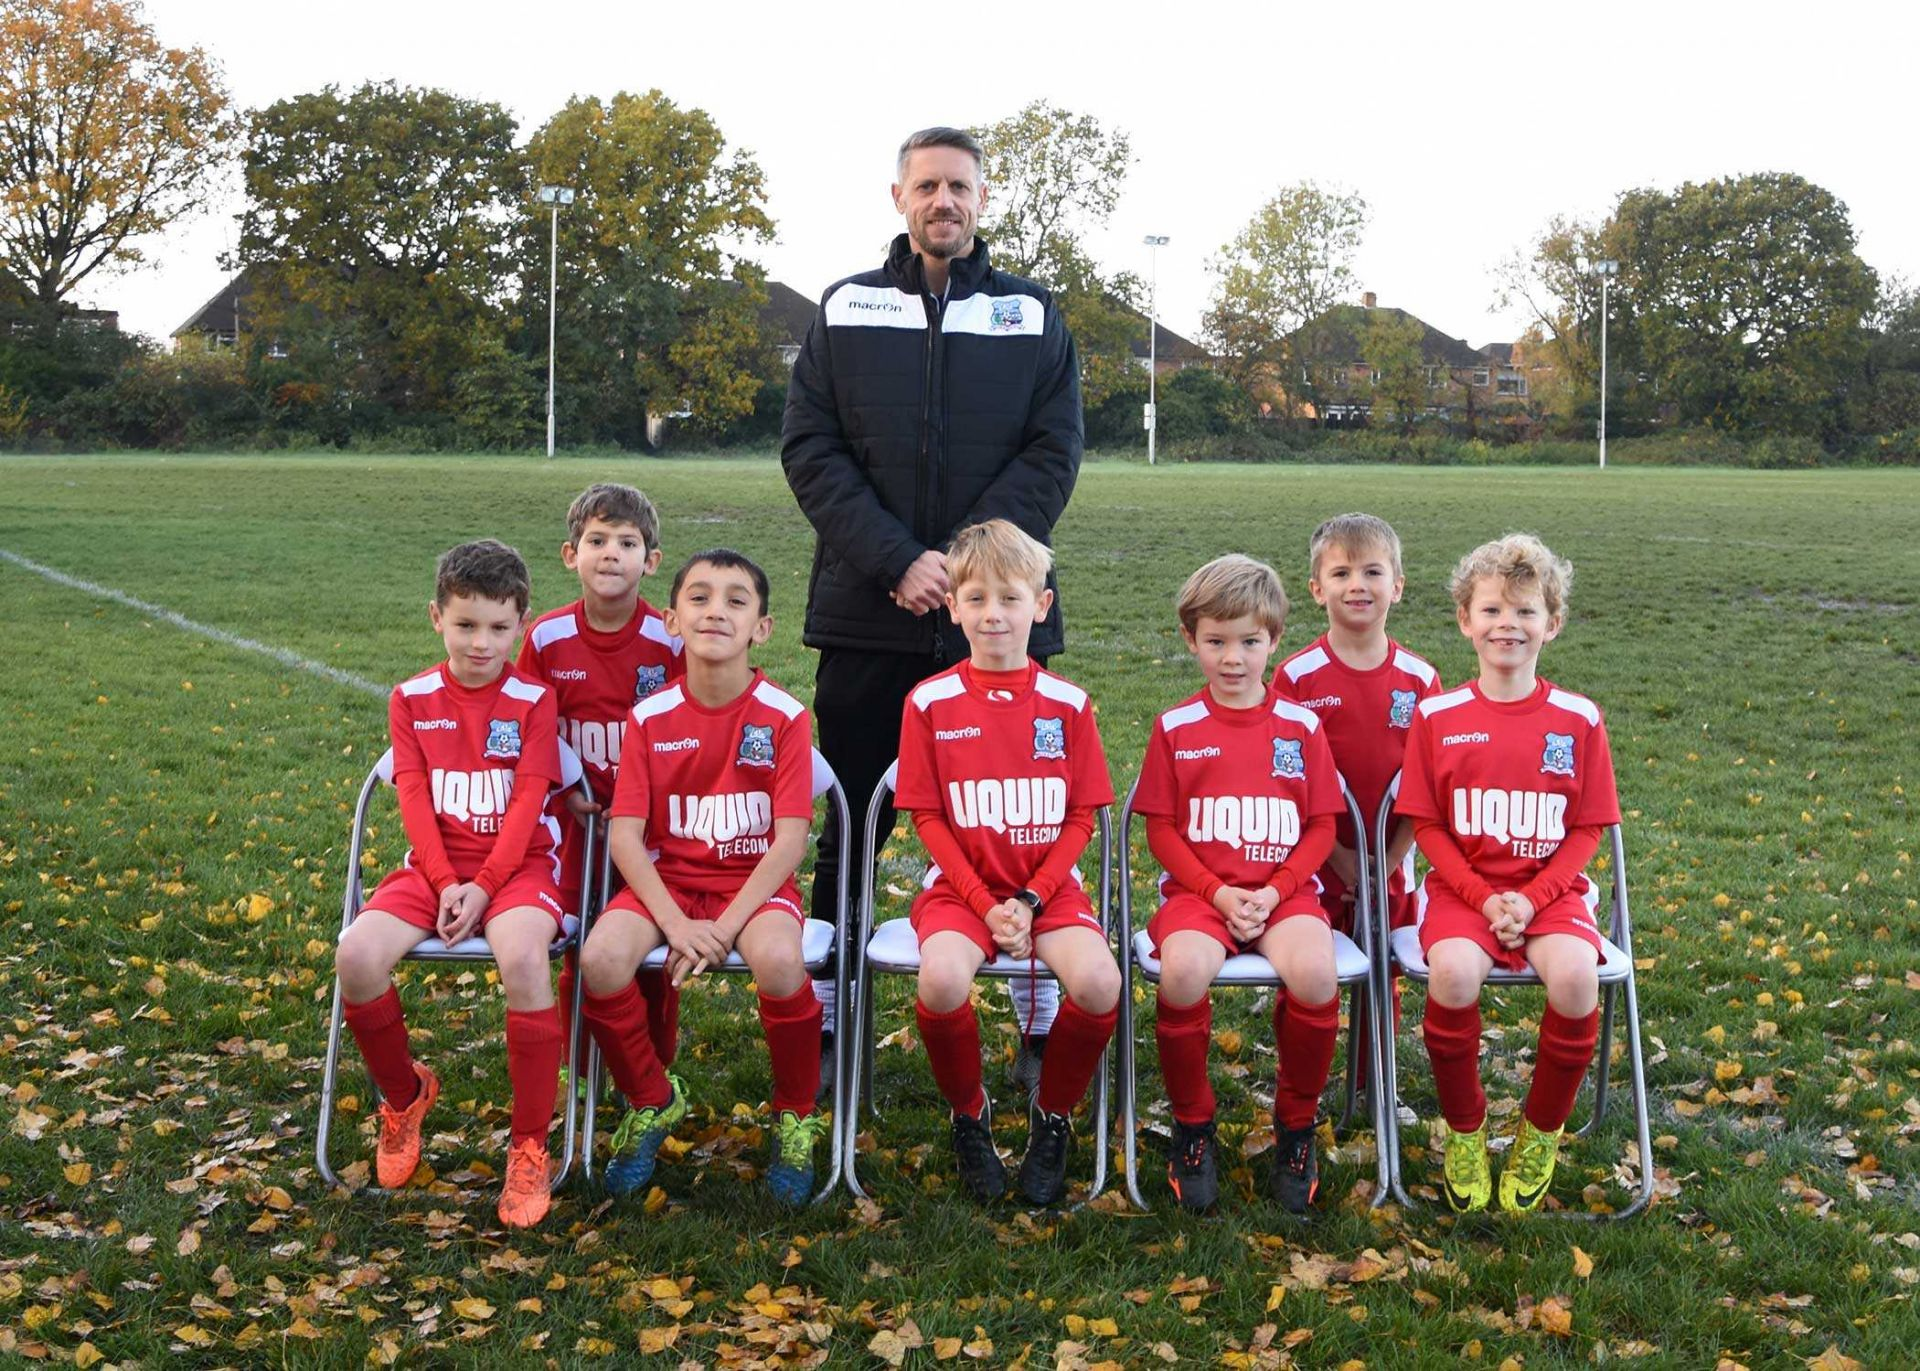 WH Youth FC Website Teams U8 Falcons 1